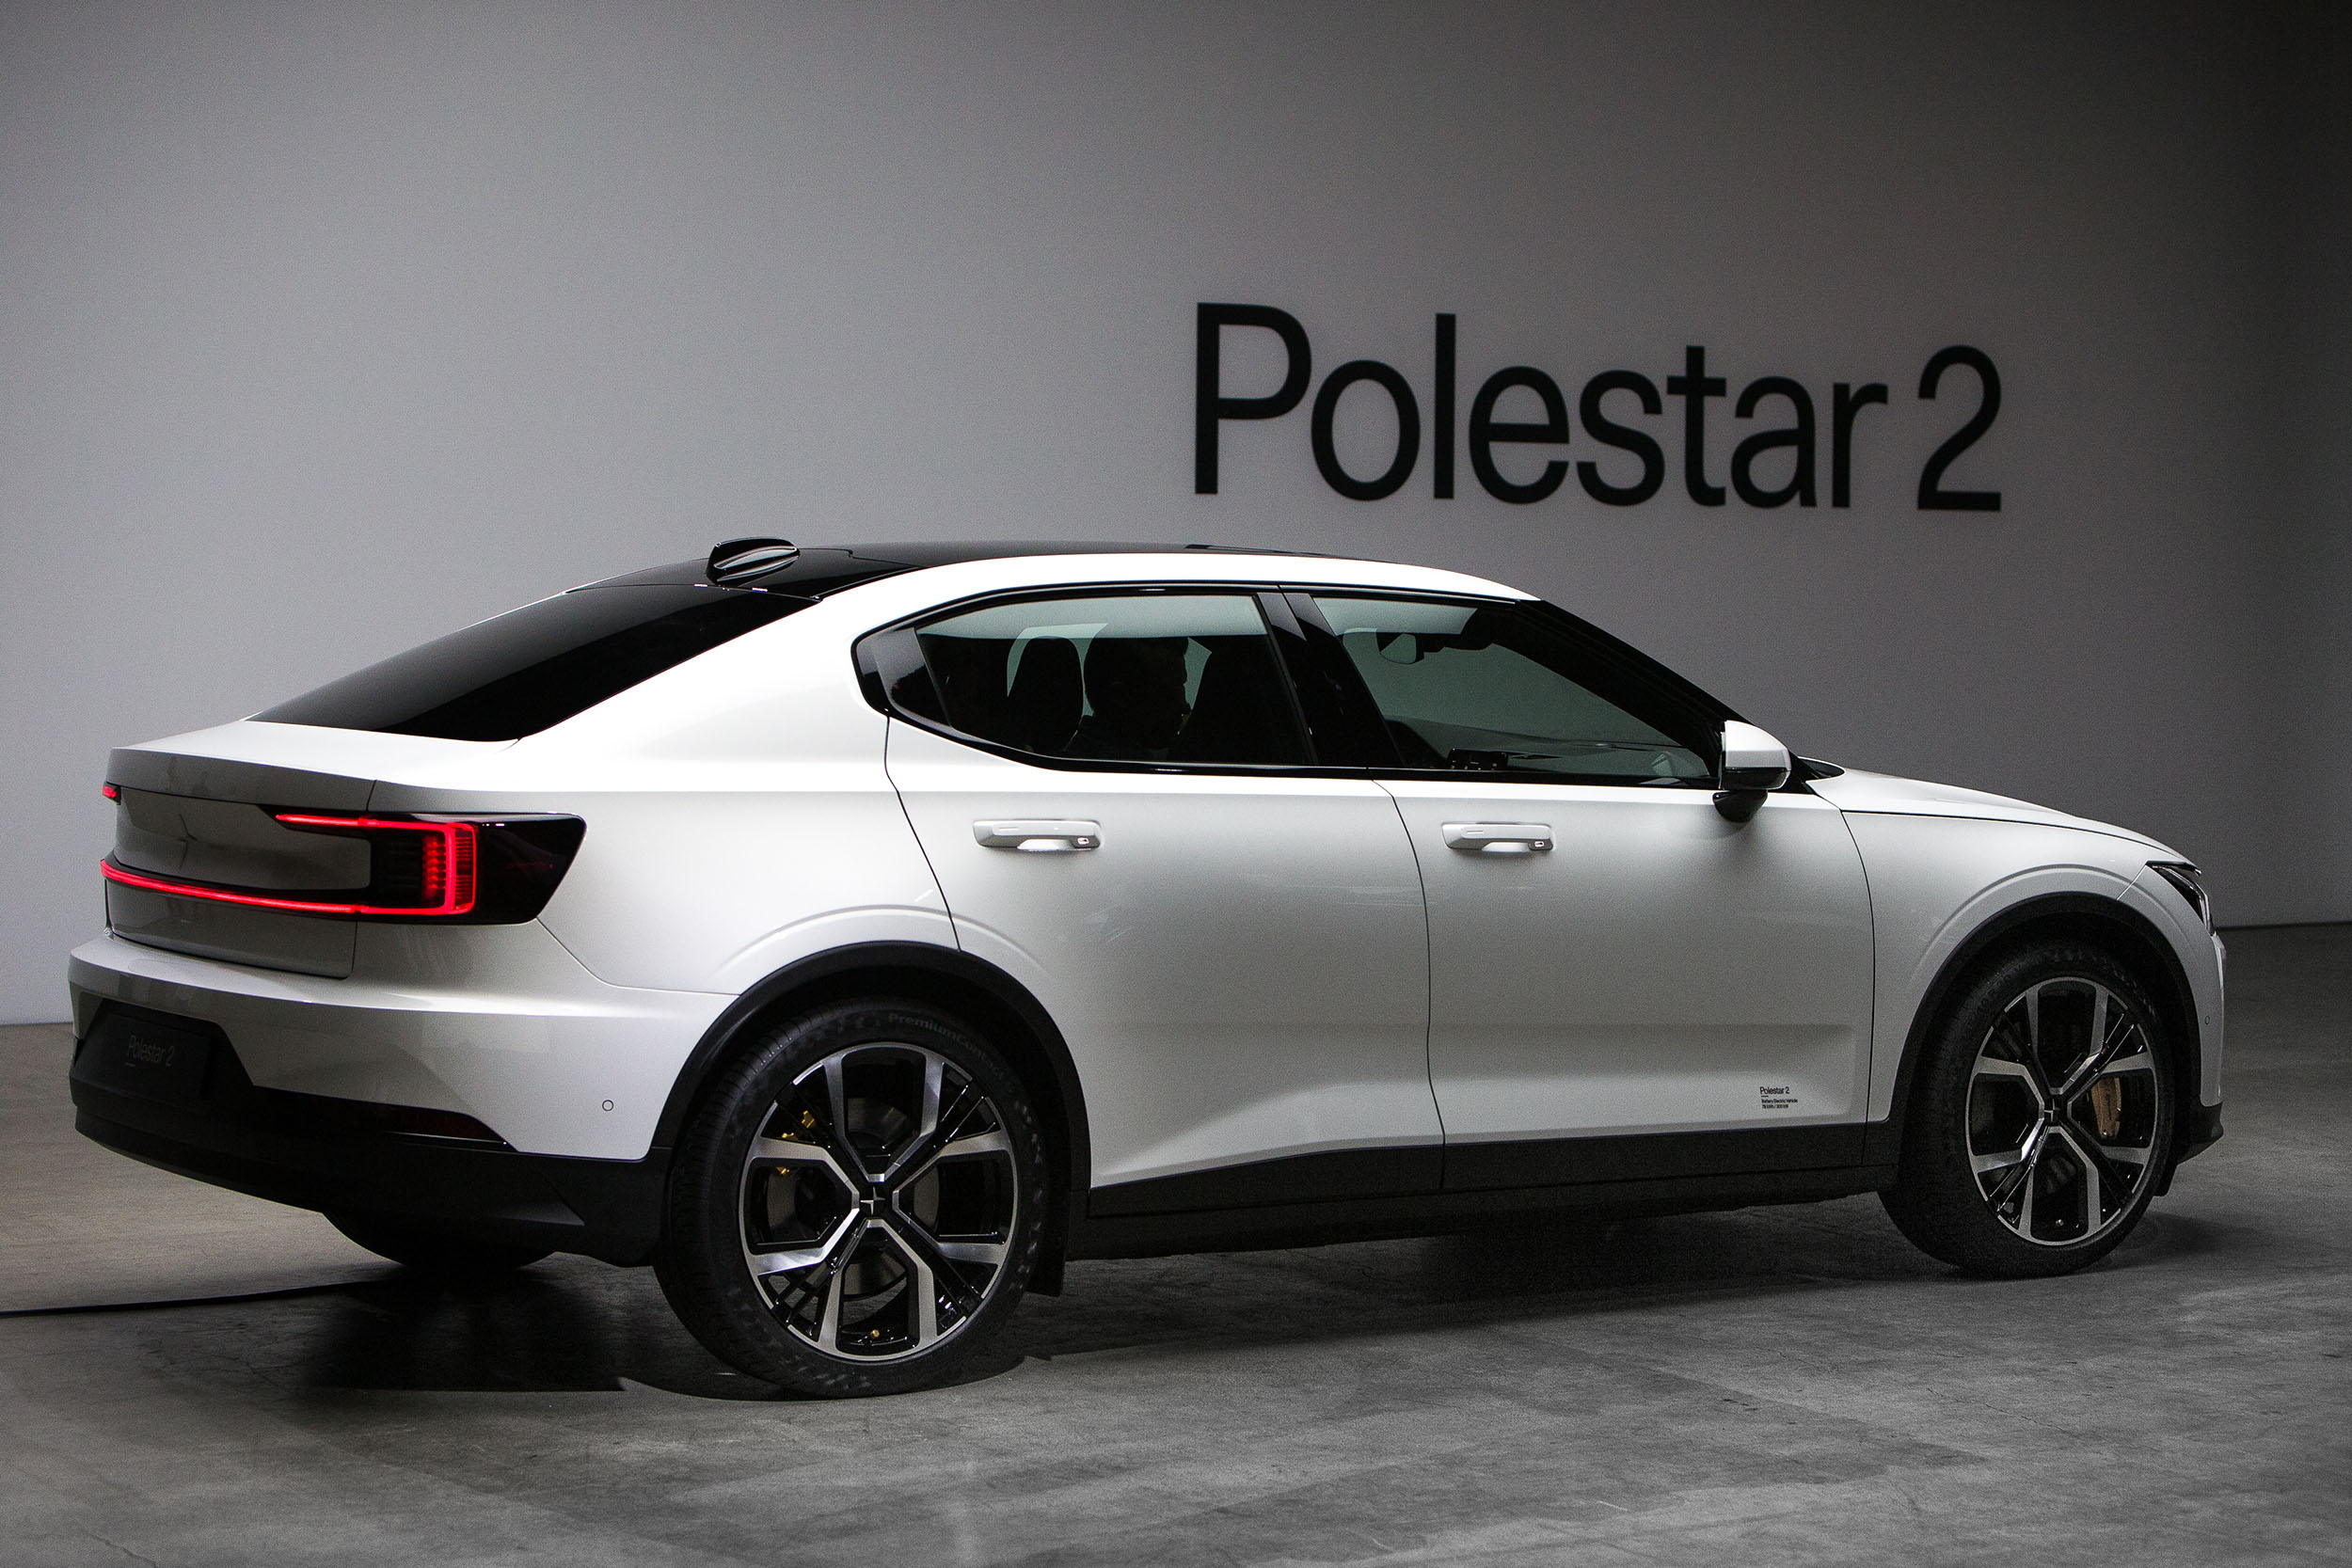 New Car Review: The Polestar 2